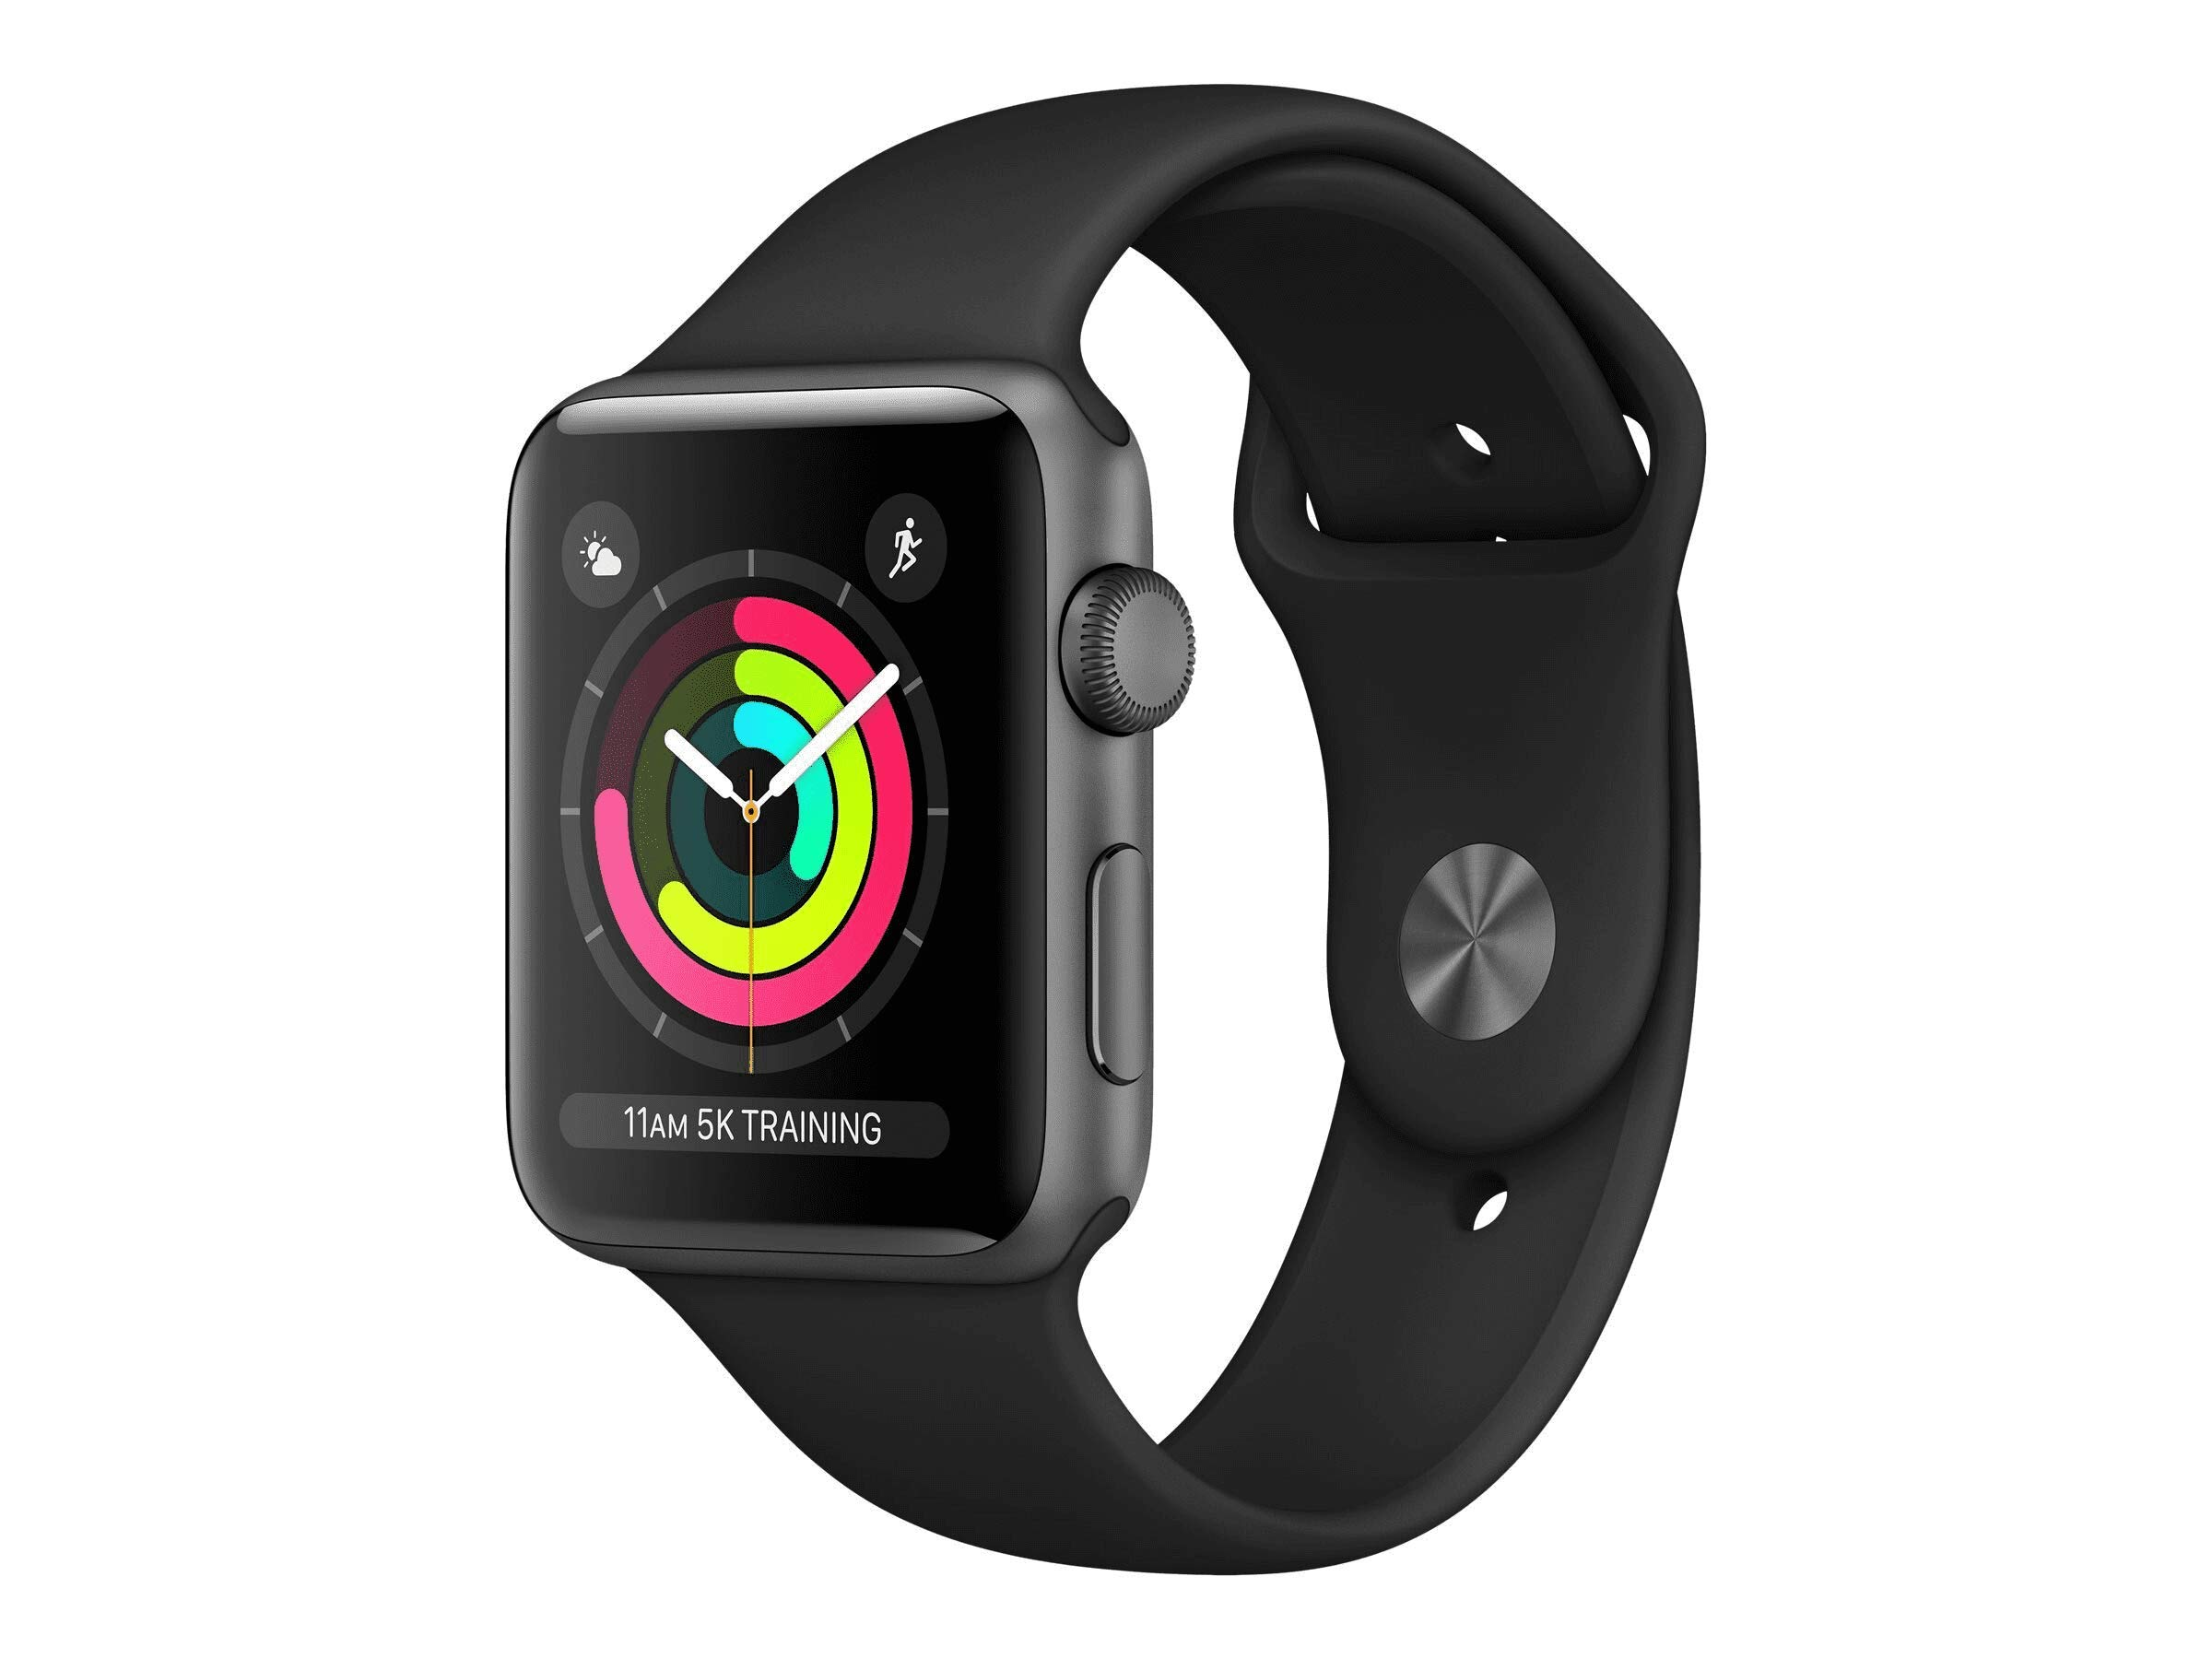 Apple Watch Series 3 (GPS), 38mm Space Gray Aluminum Case with Black Sport Band - MQKV2LL/A (Renewed) by Apple